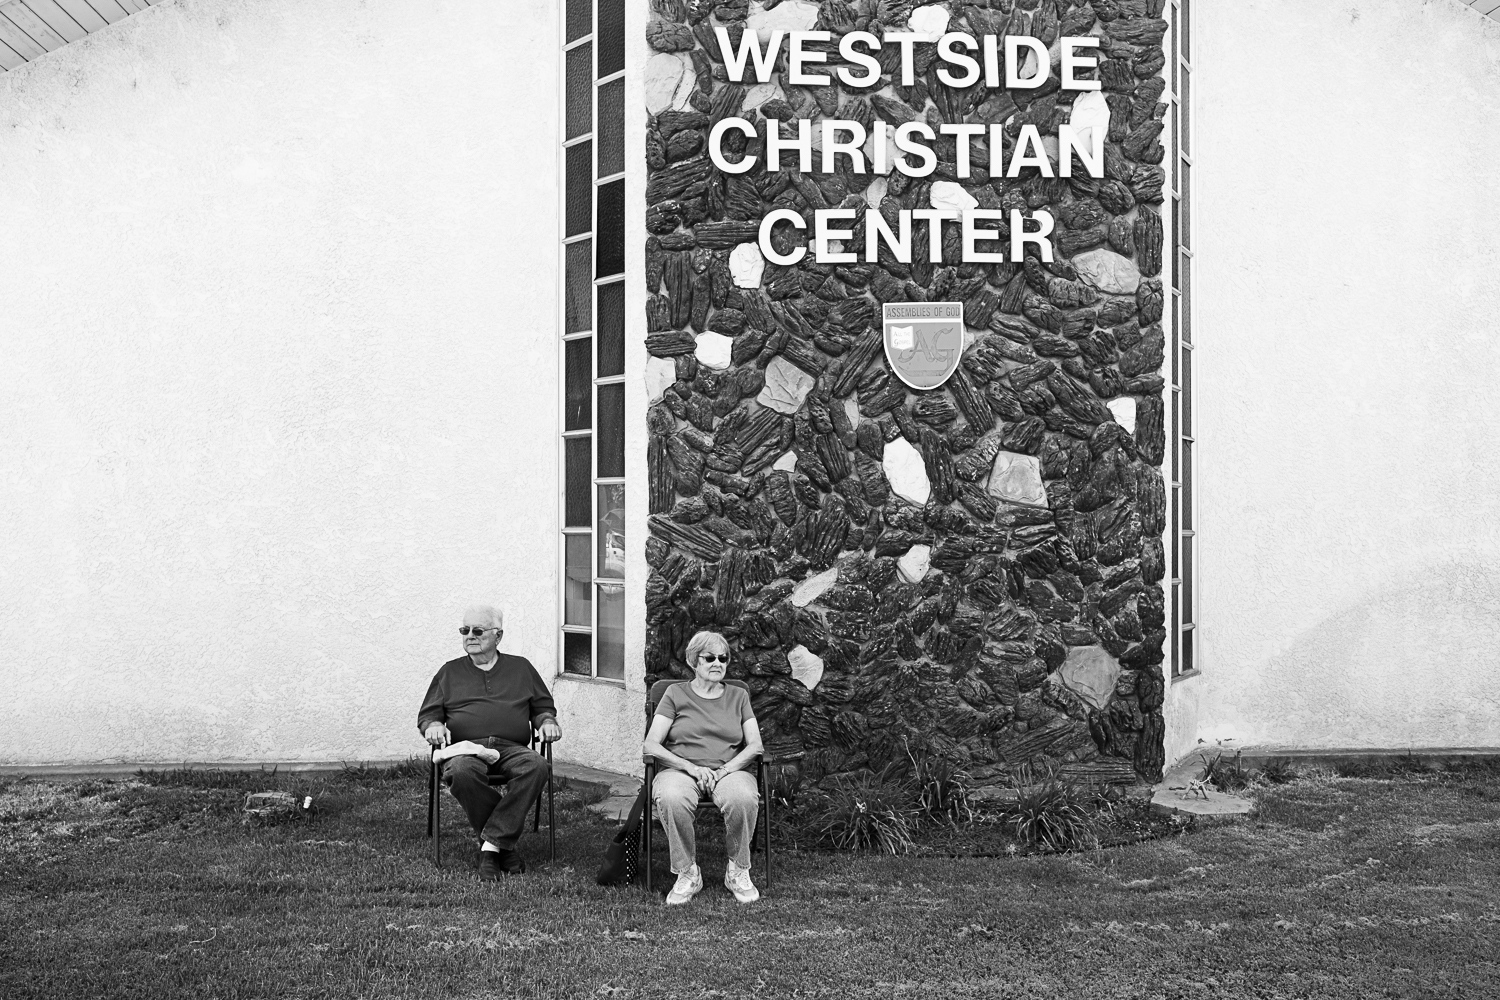 Westside Christian Center Gustine, Ca 2017